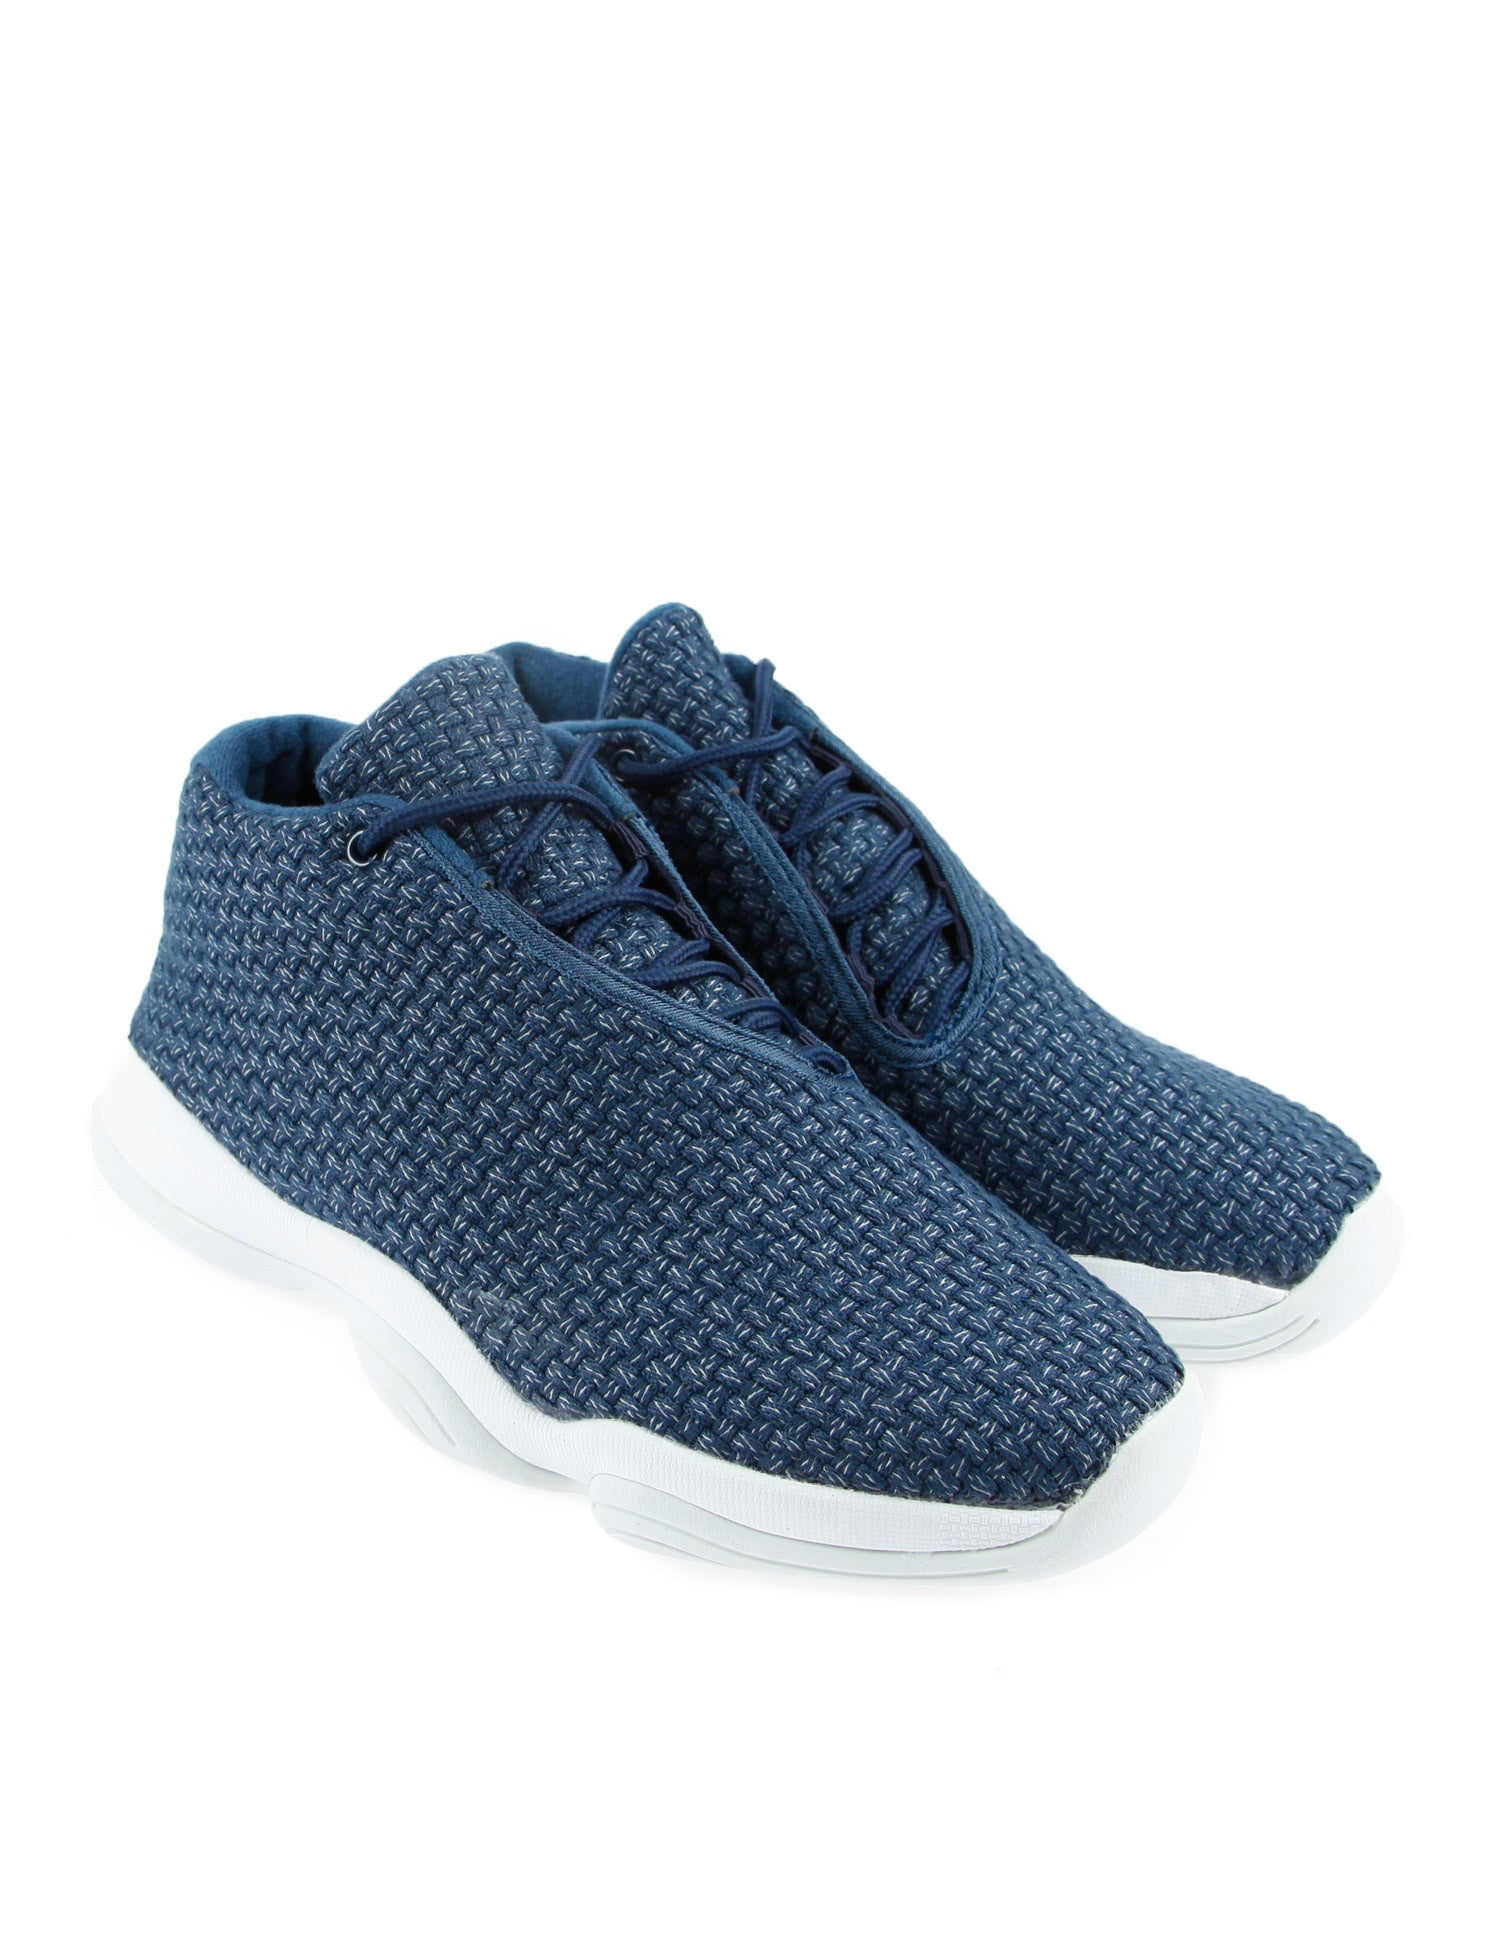 Cultz Shoes 150717 Navy